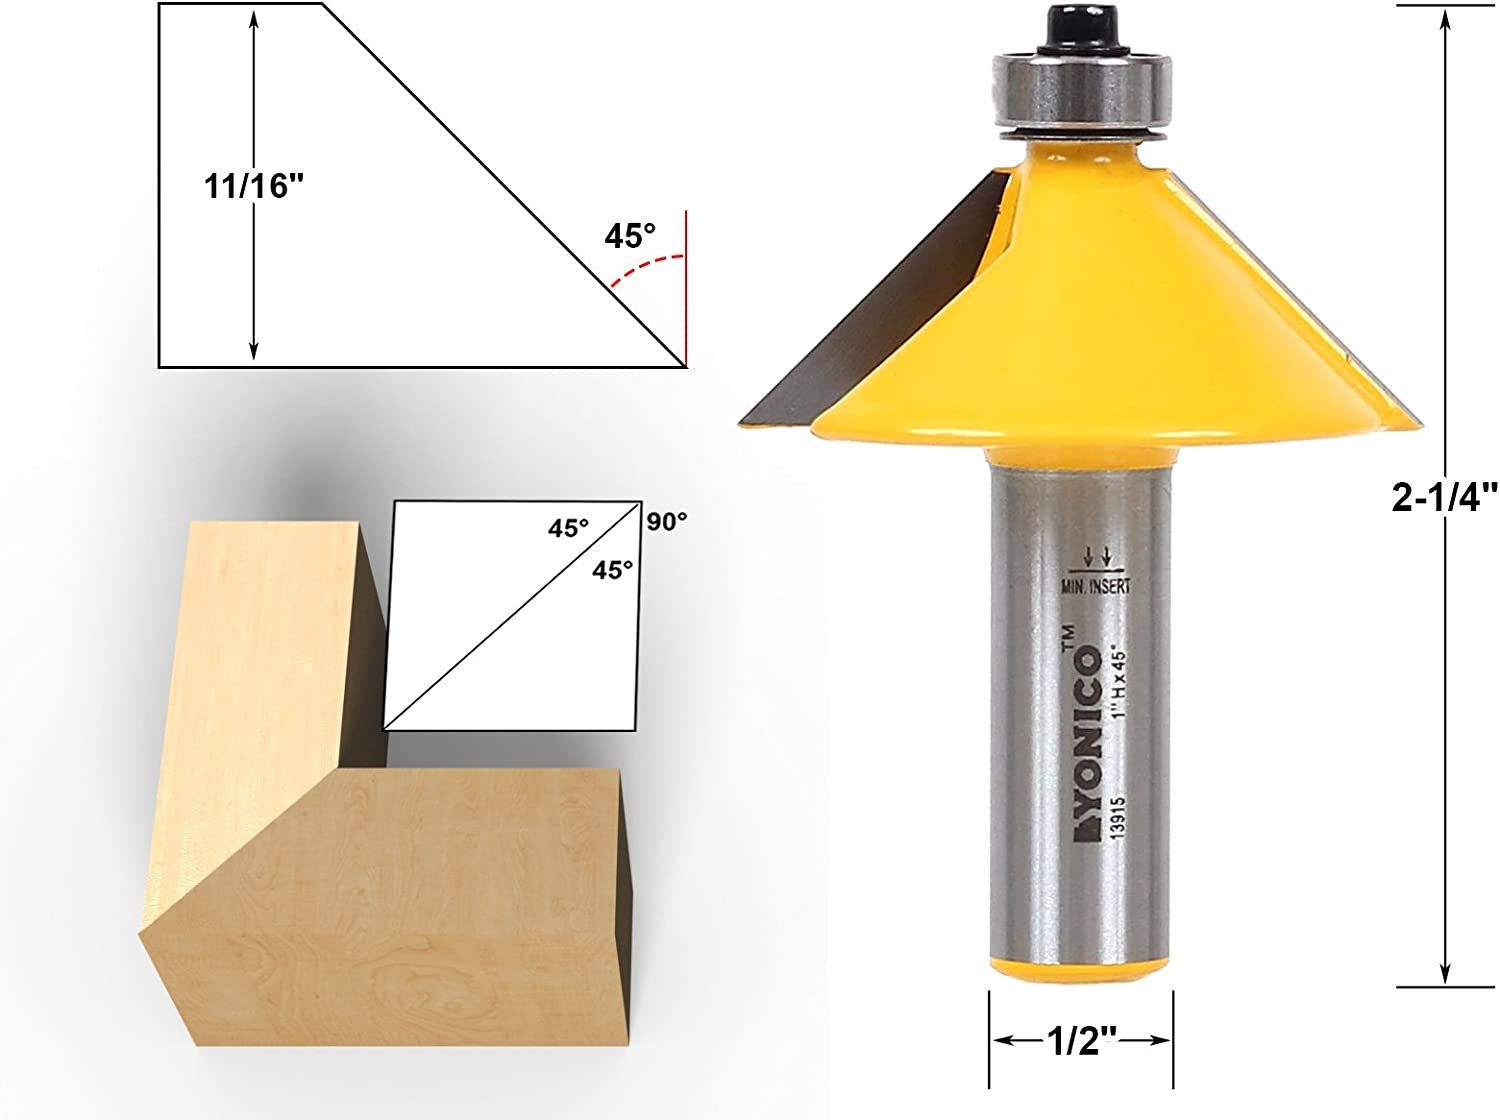 Yonico 13915 45 Degree Bevel Edge Forming Router Bit 1/2-Inch Shank